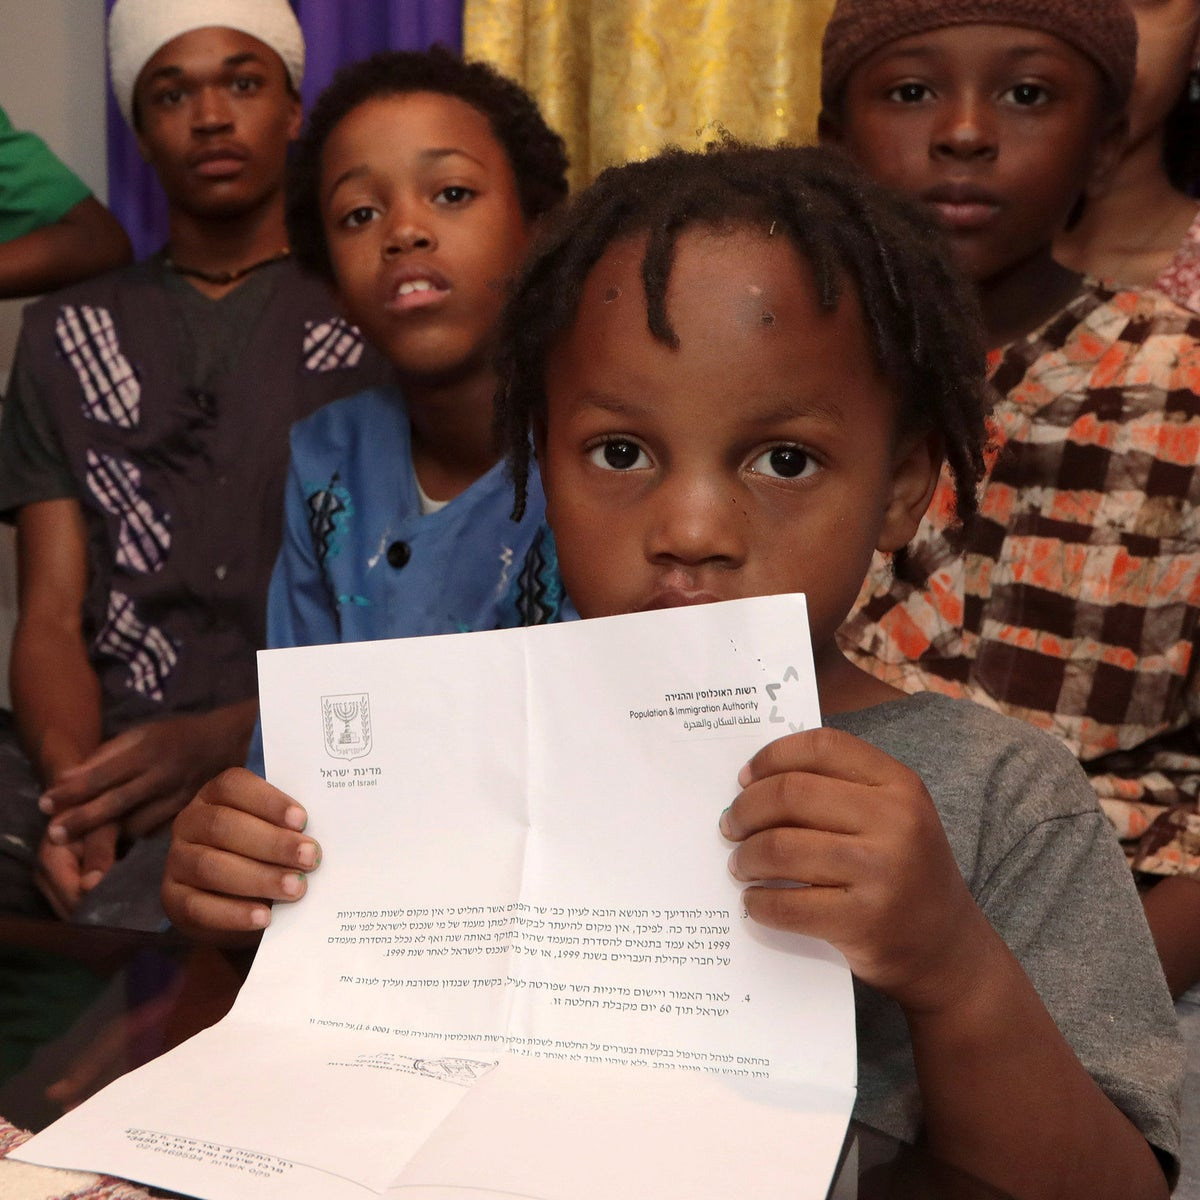 A young member of the Hebrew Israelite community in Dimona holding the deportation letter from the government.